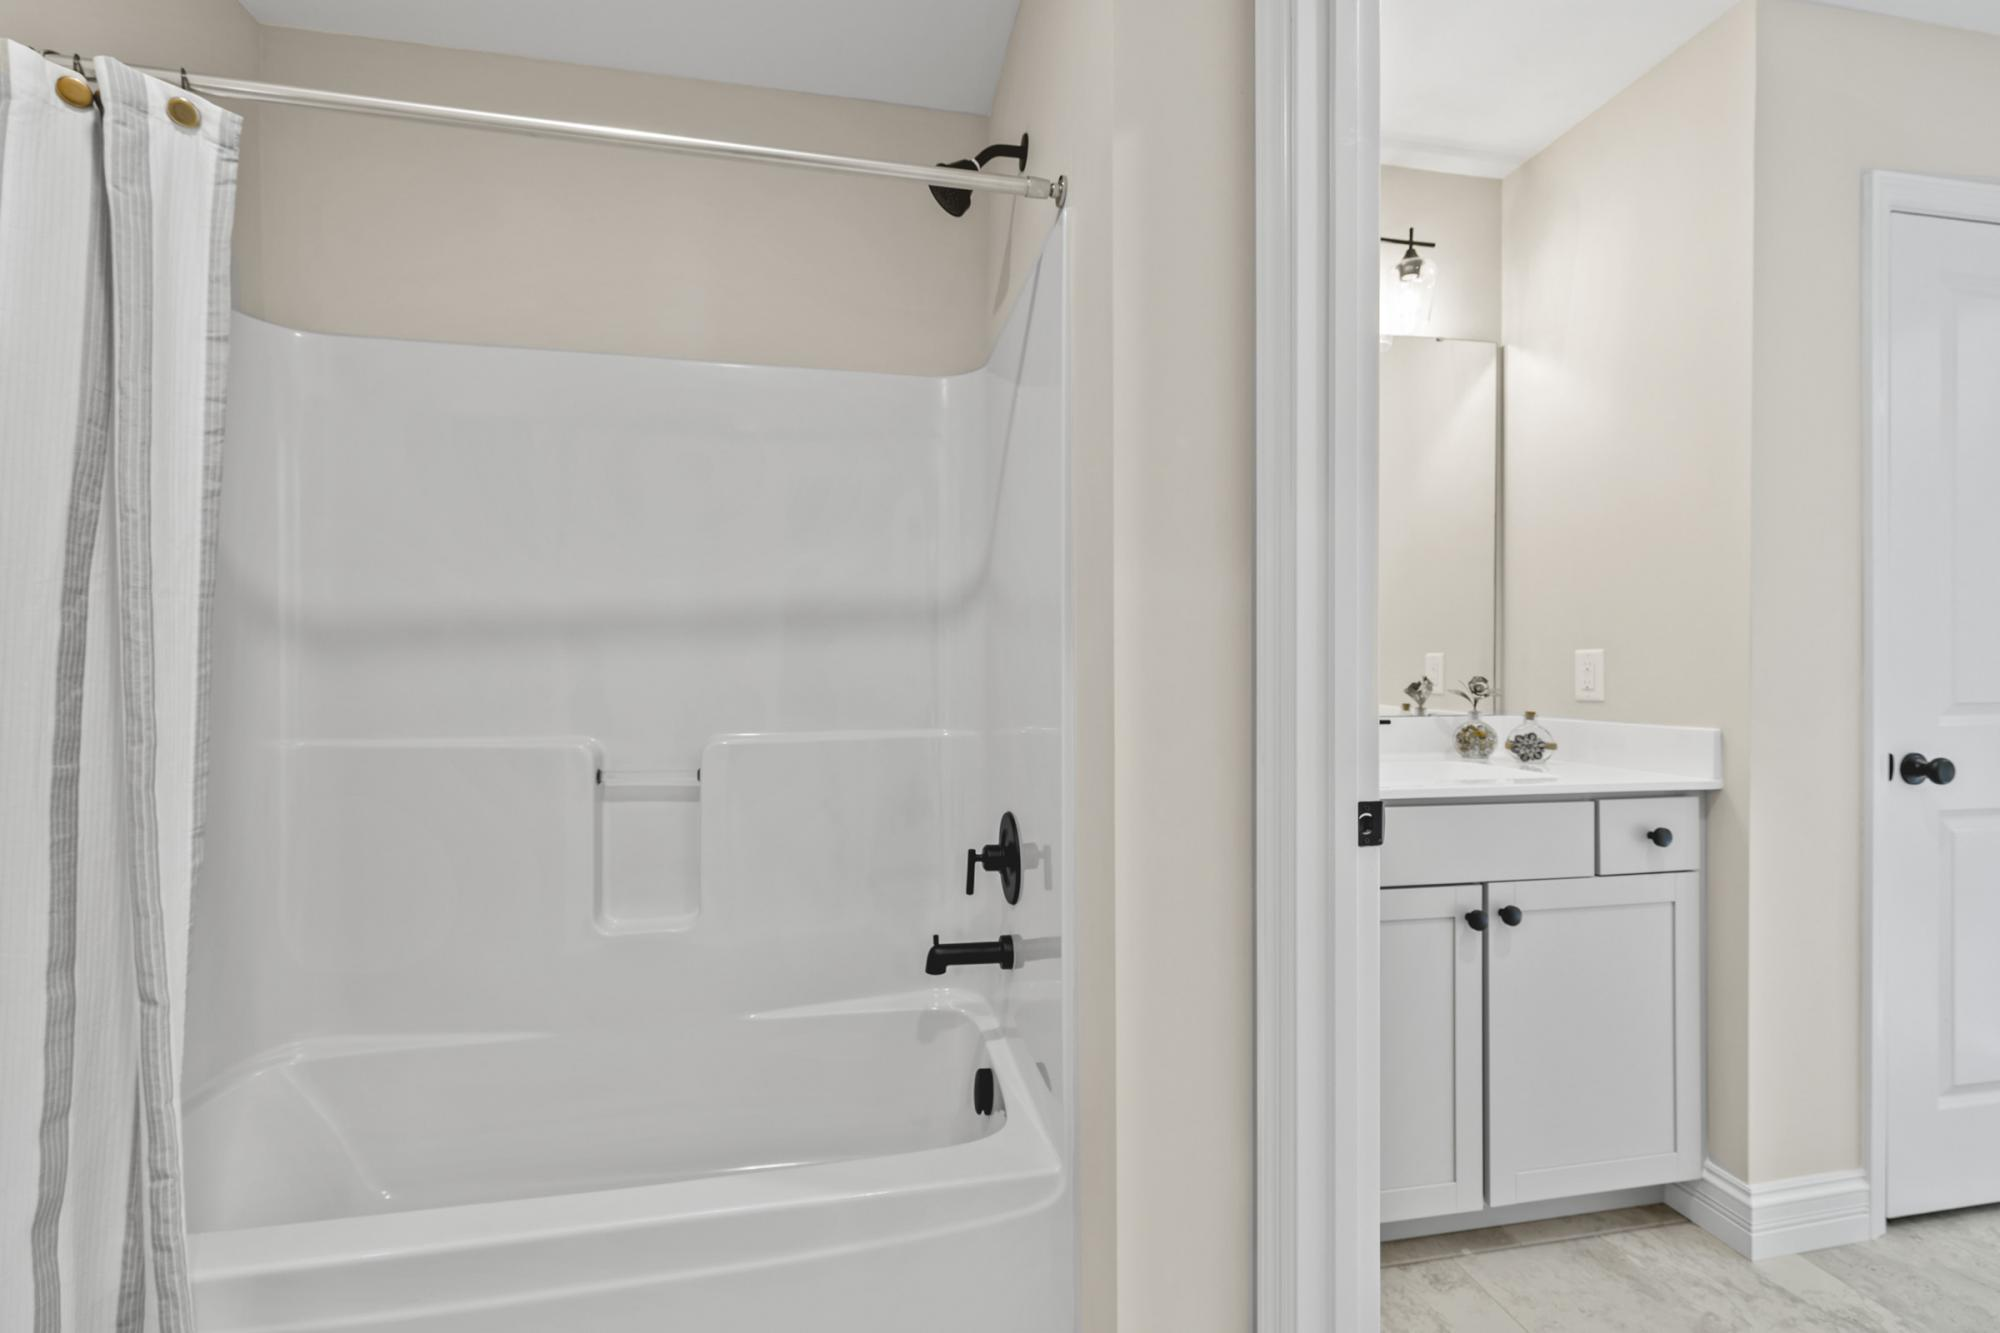 Bathroom featured in the Muirfield By McKelvey Homes in St. Louis, MO